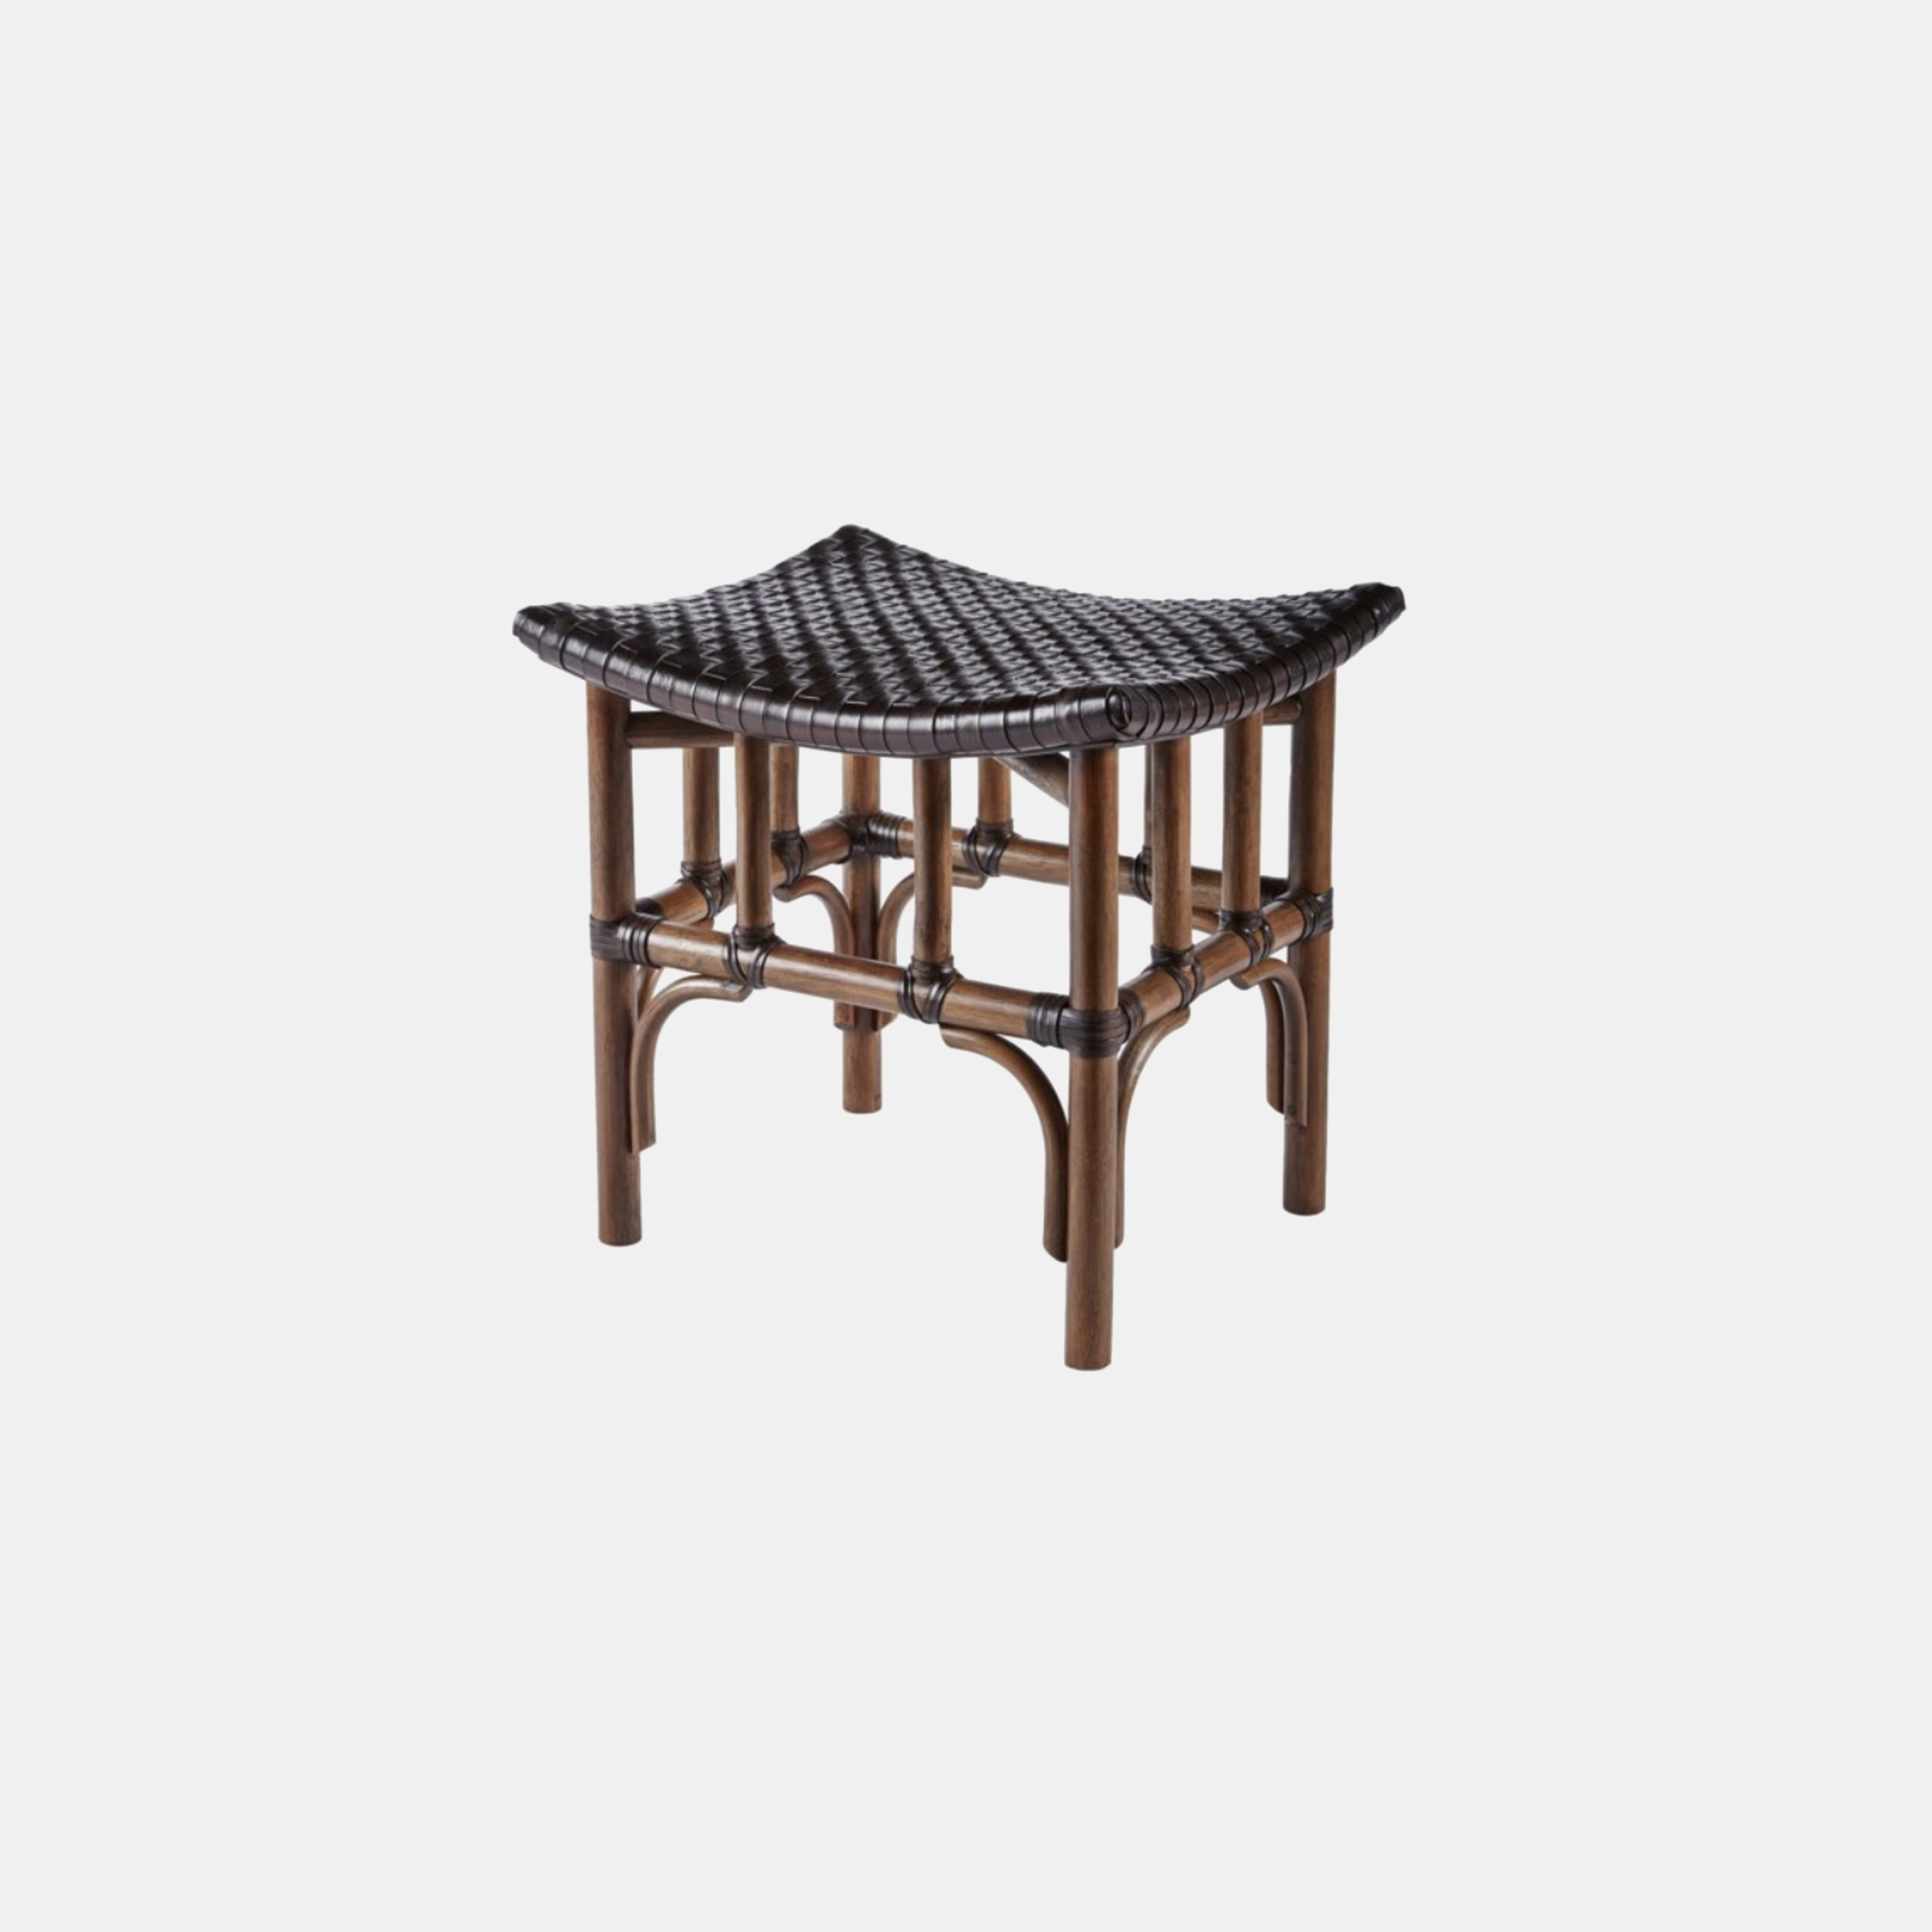 Leather Woven Stool  20.5'' x 17'' x 20'' Available in cinnamon (shown) and nutmeg. SKU6680SLM